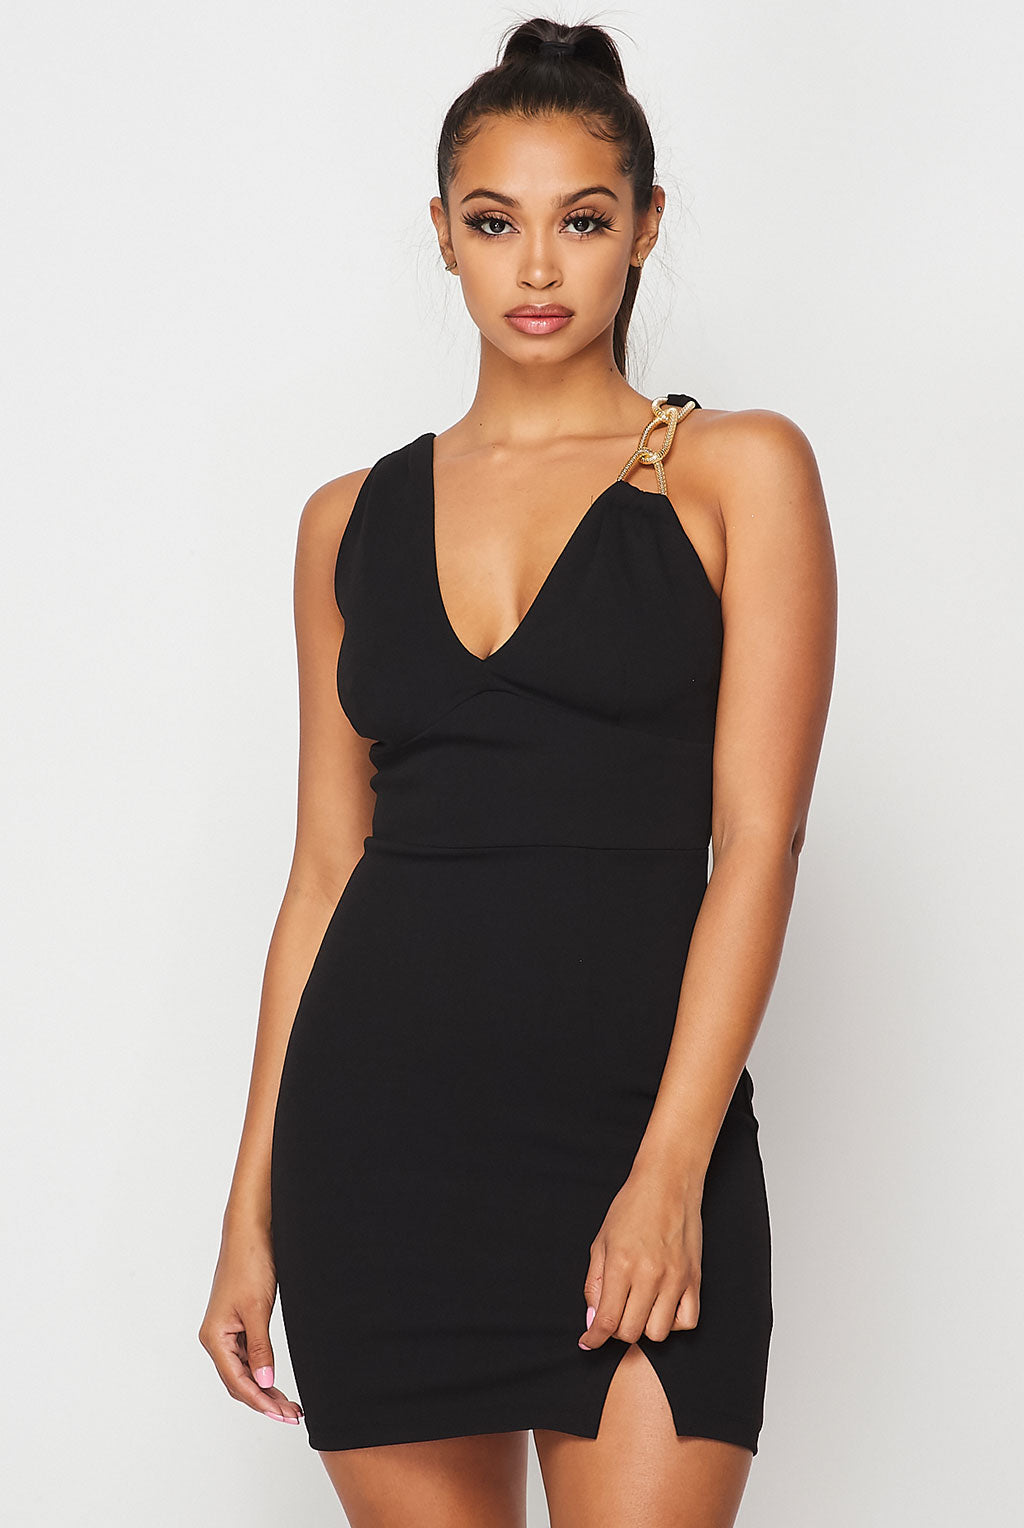 Teeze Me | Chain Strap Front Slit Fitted Dress | Black/Gold